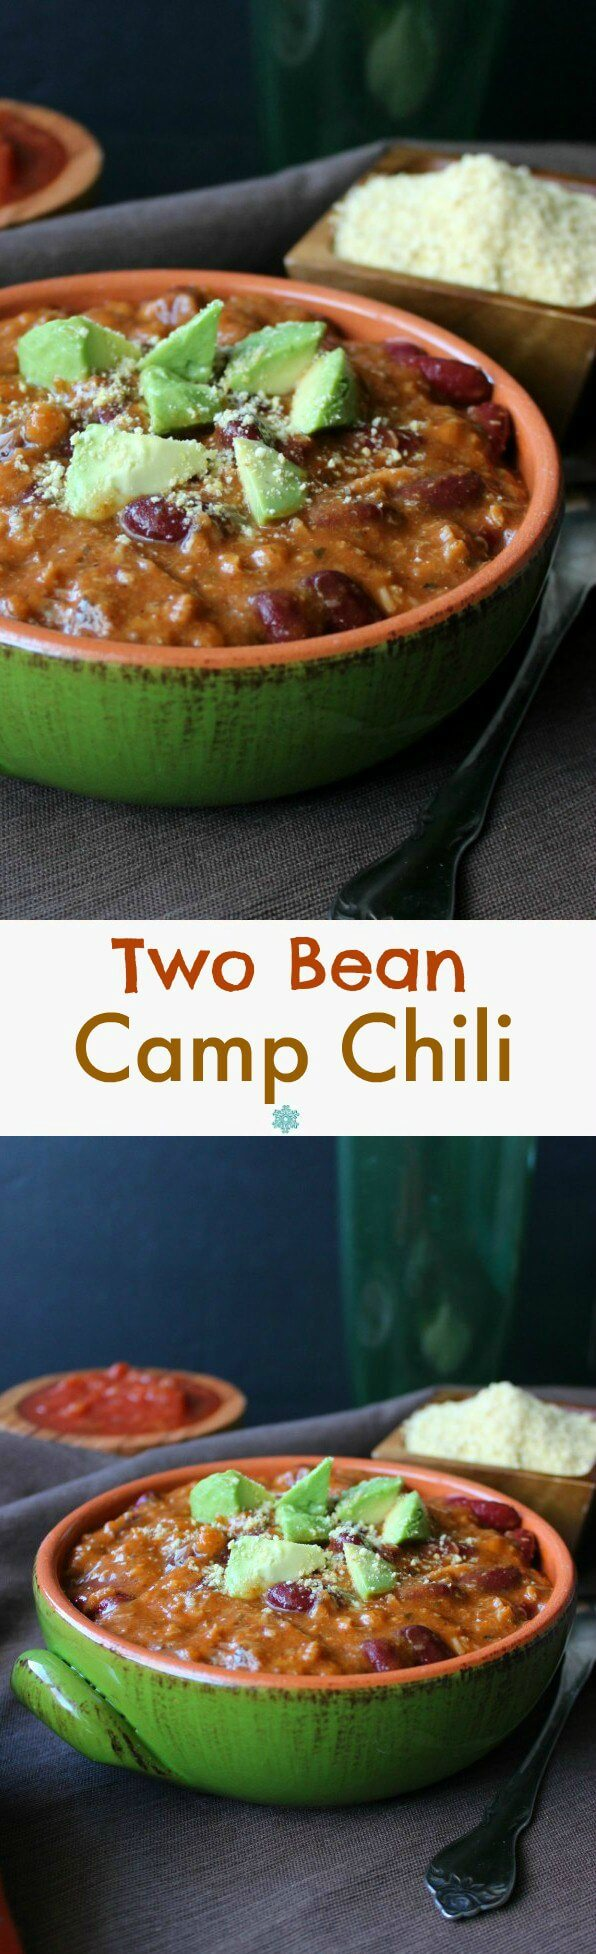 Two Bean Camp Chili is a fun main or side dish that can enhance any ...